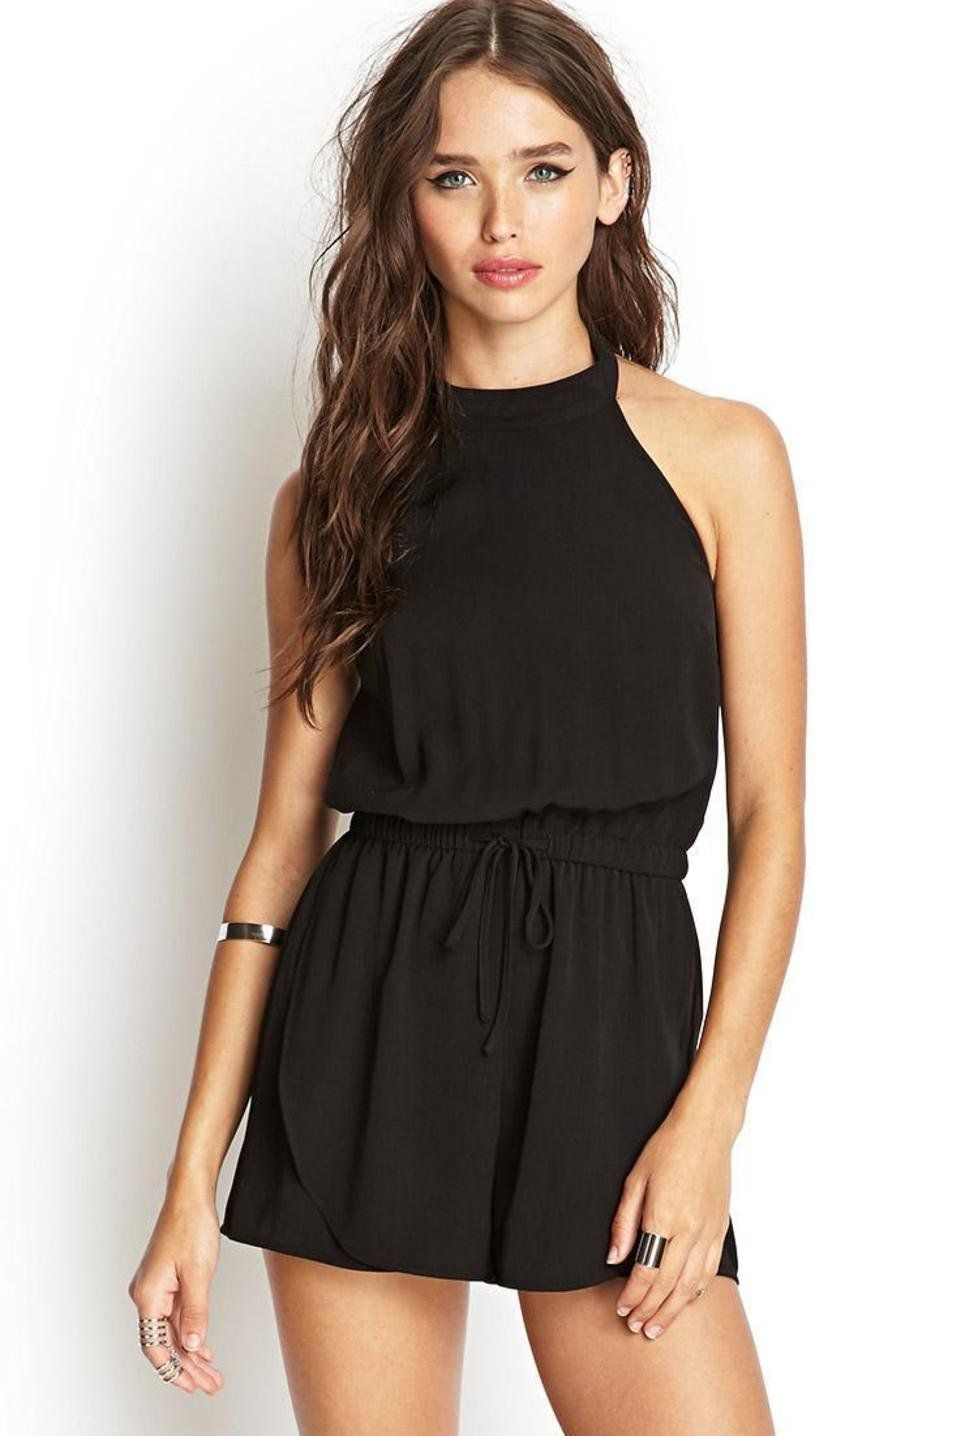 Black dress romper - Black Dress High Neck Rompers